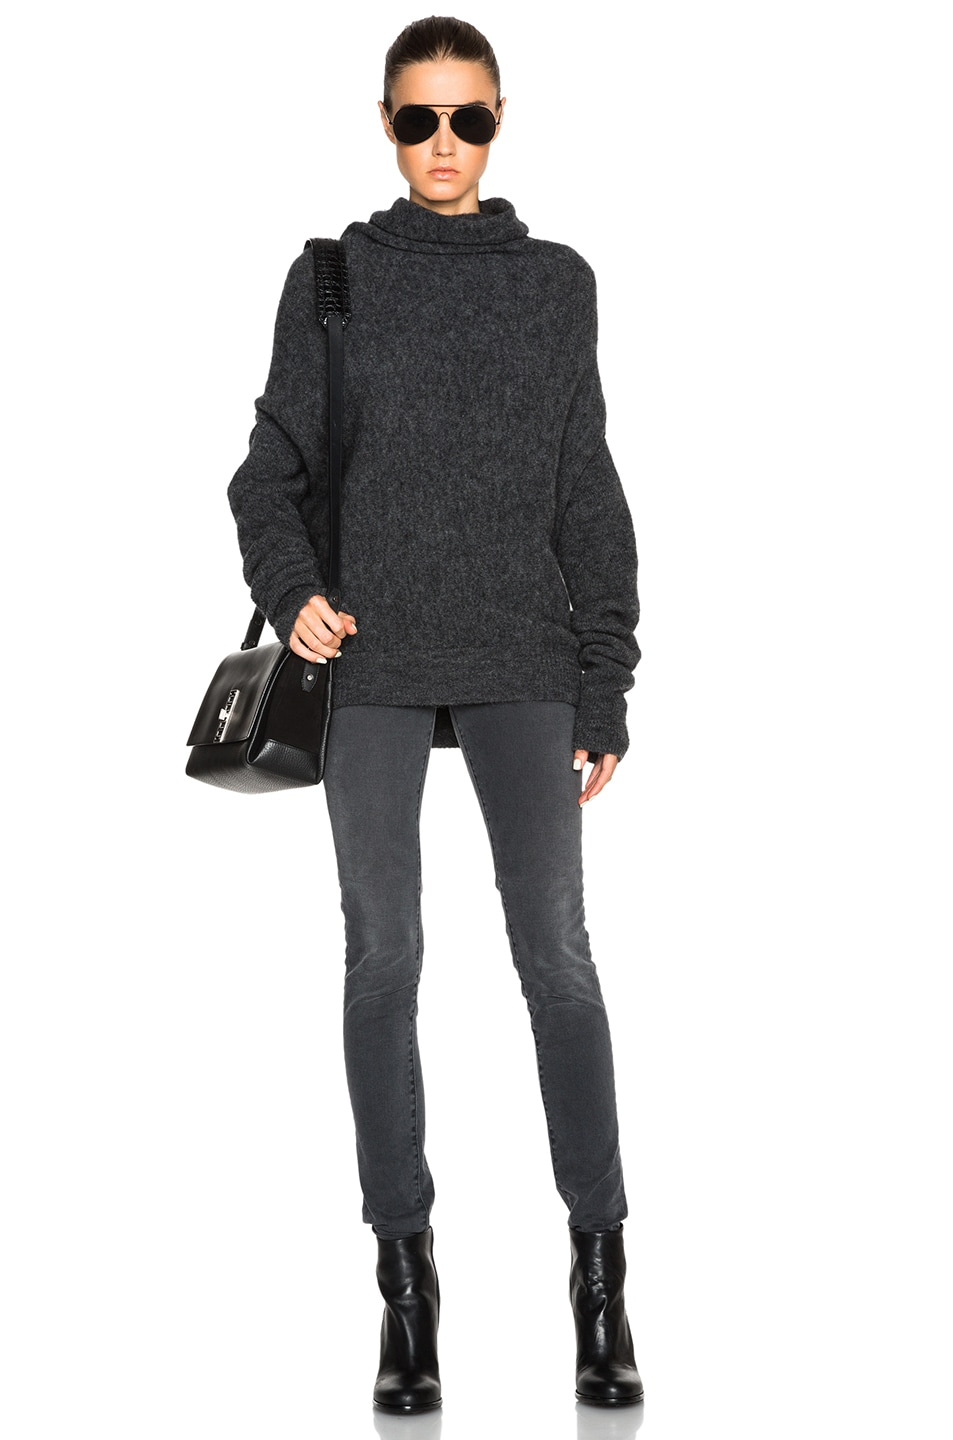 Image 5 of Acne Studios Vendome Drape Mohair Sweater in Dark Grey Melange 3236a3038a7